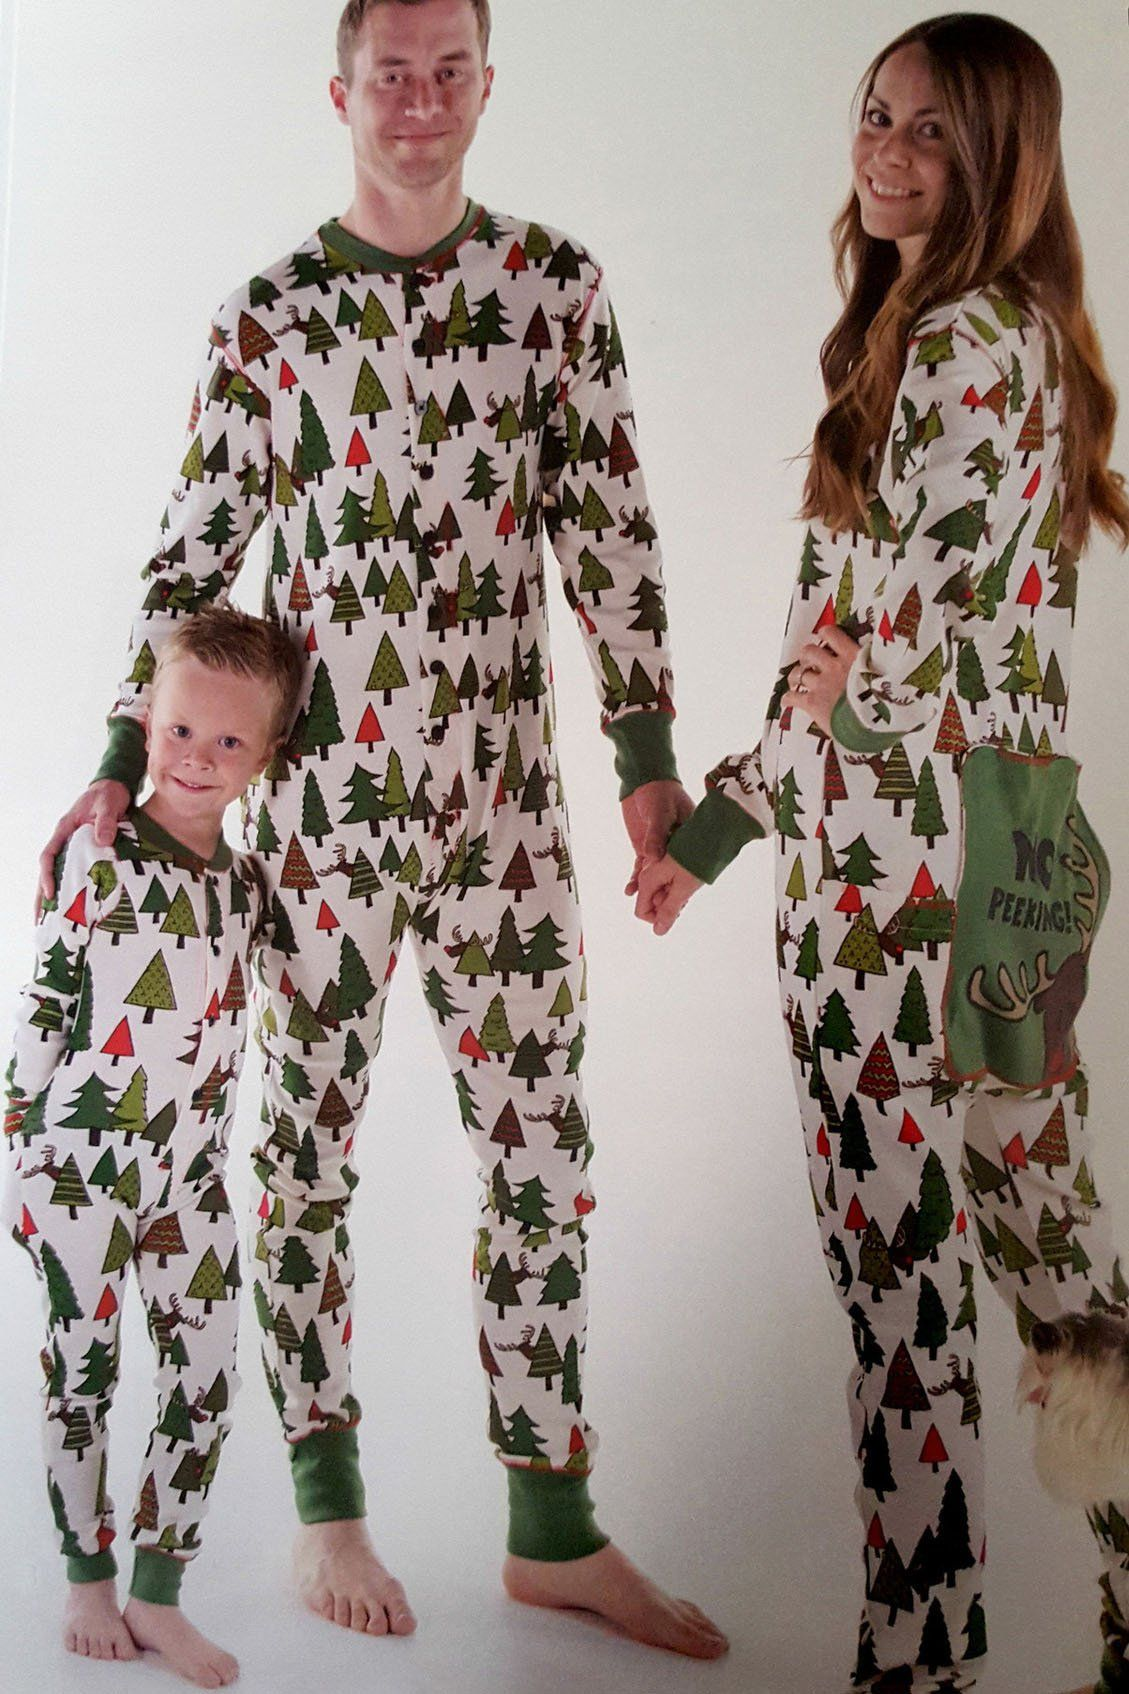 ed49335e1d Reindeer Christmas Trees Family Matching Pajamas Set For Xmas ...